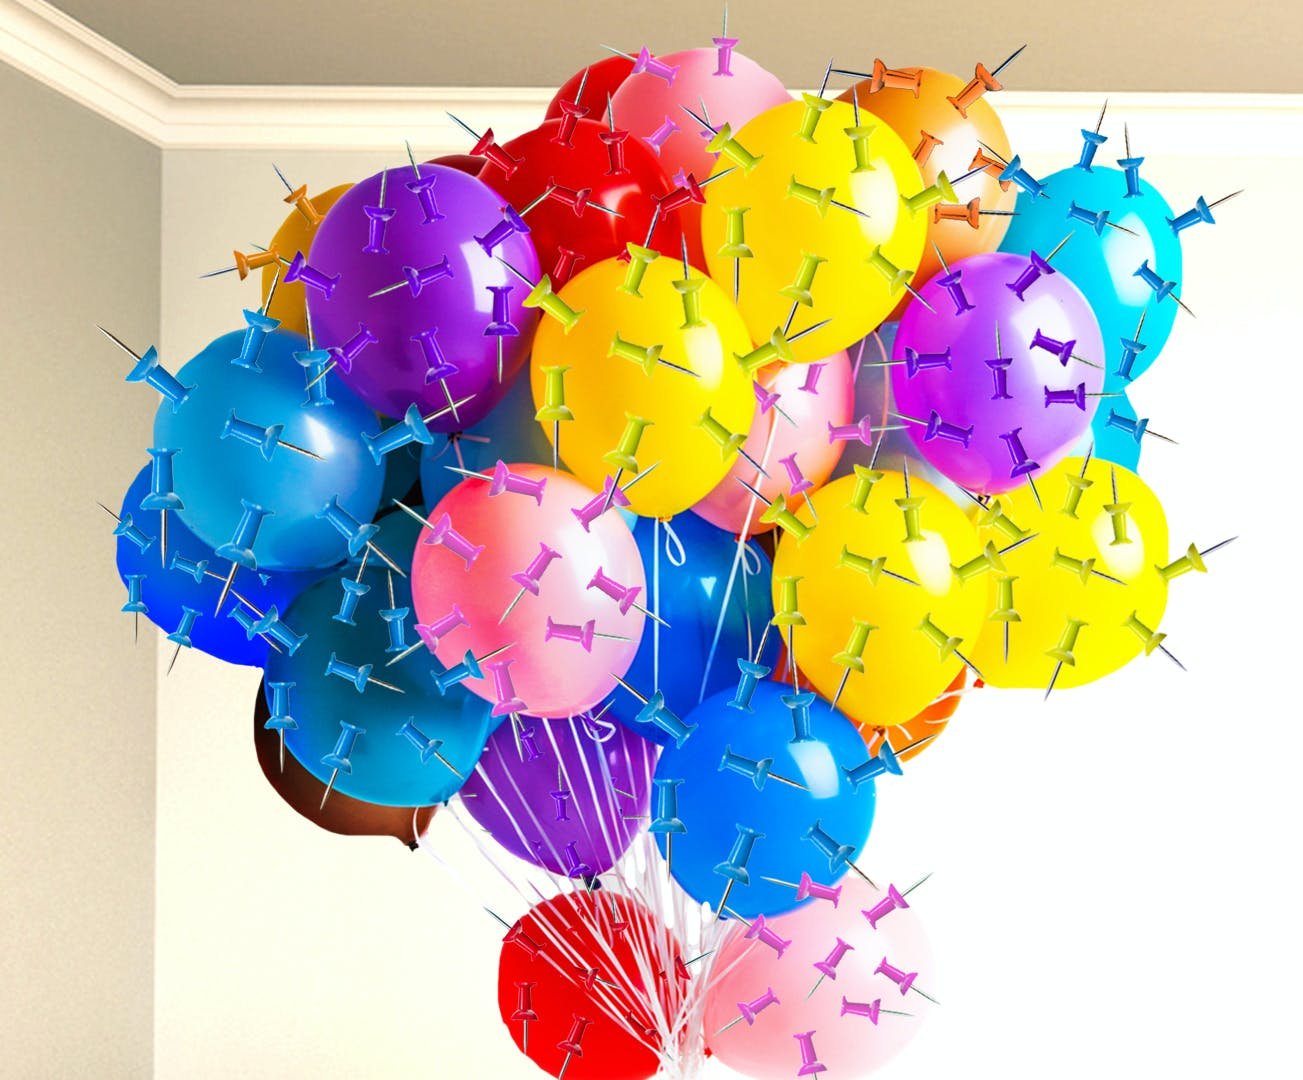 Balloons covered in pins